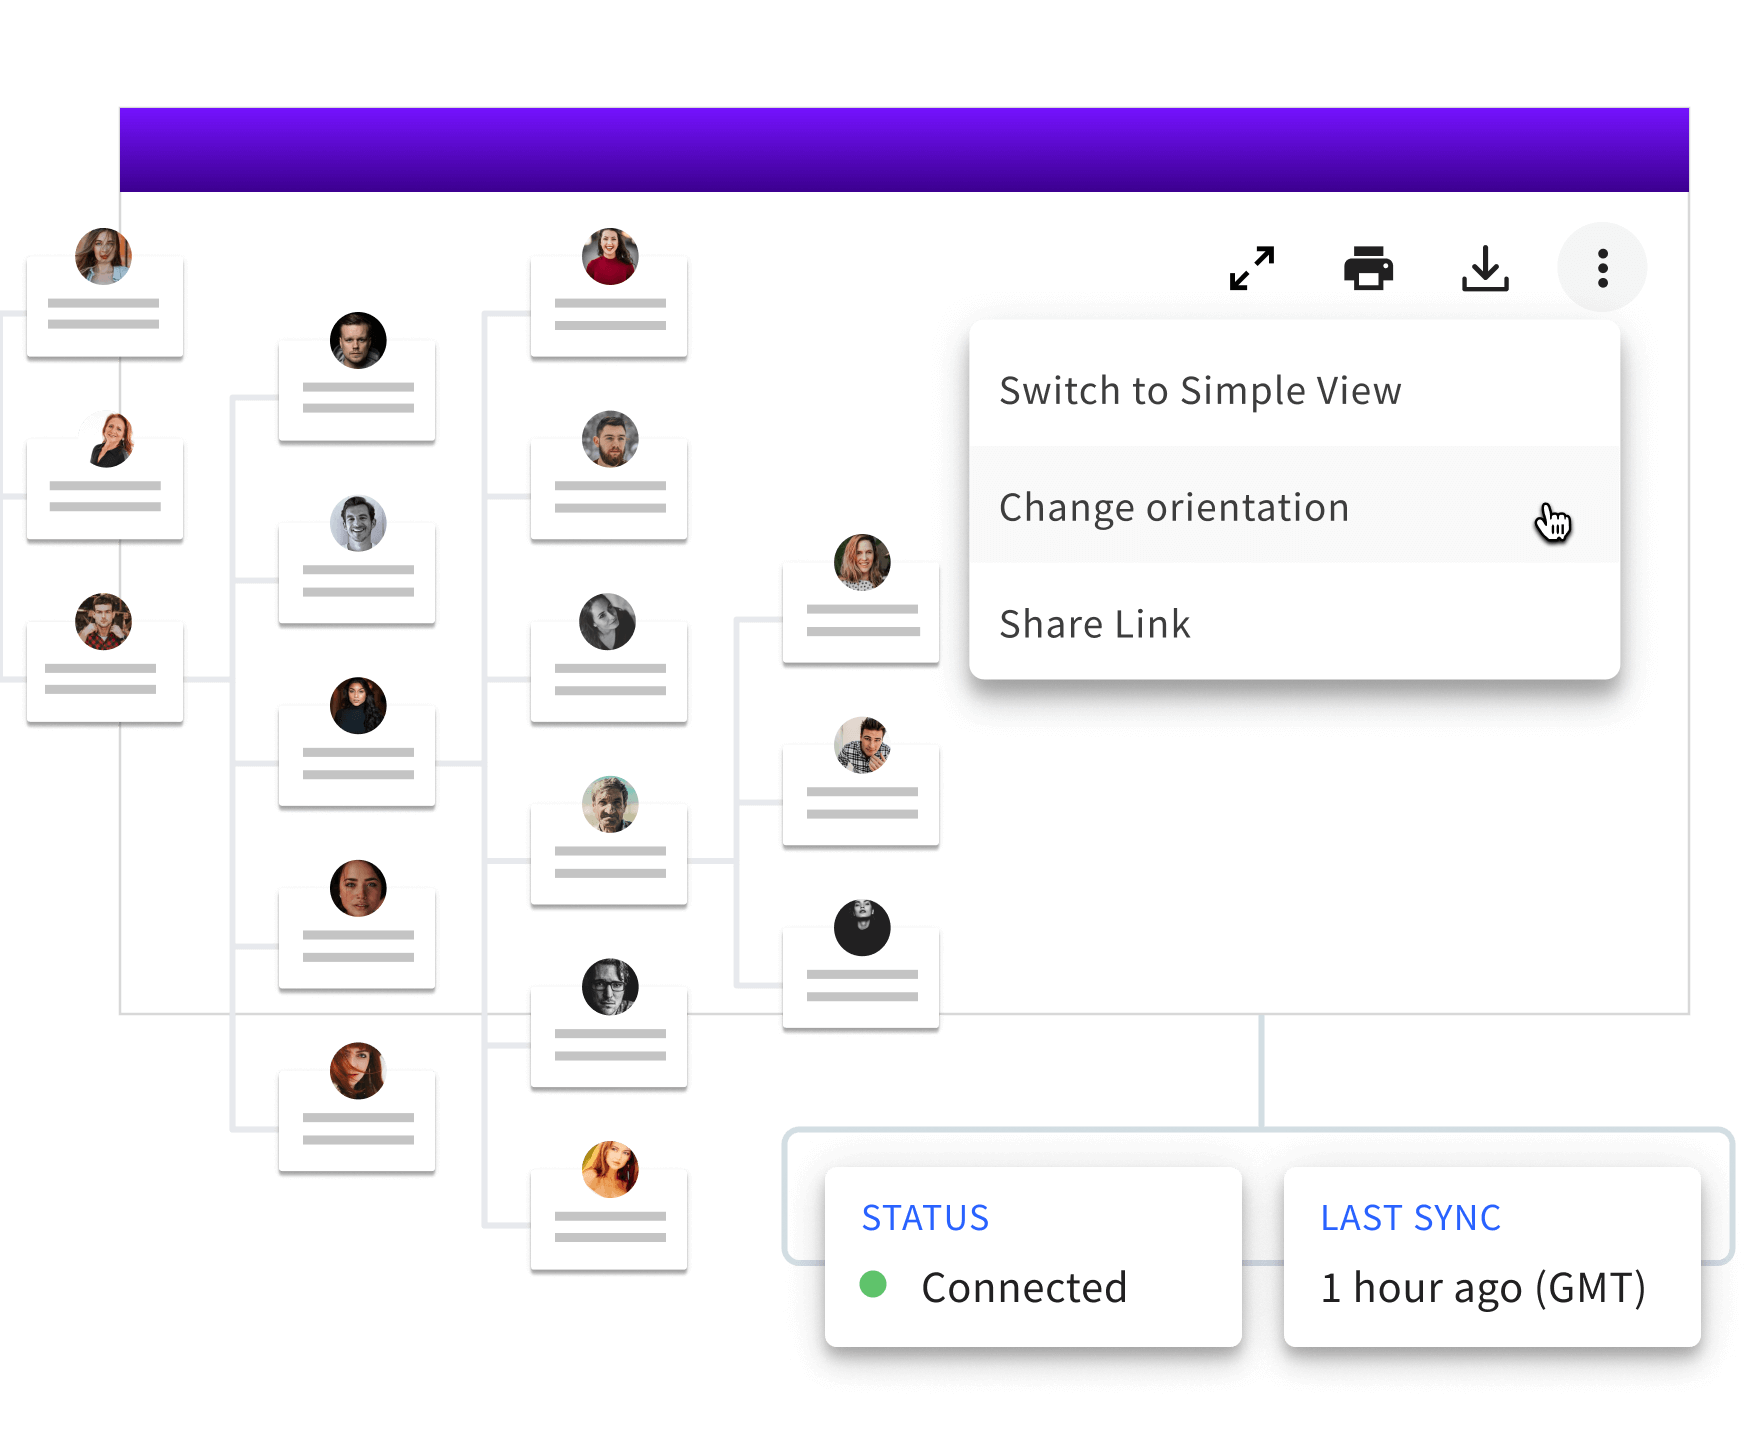 Org chart with view customization